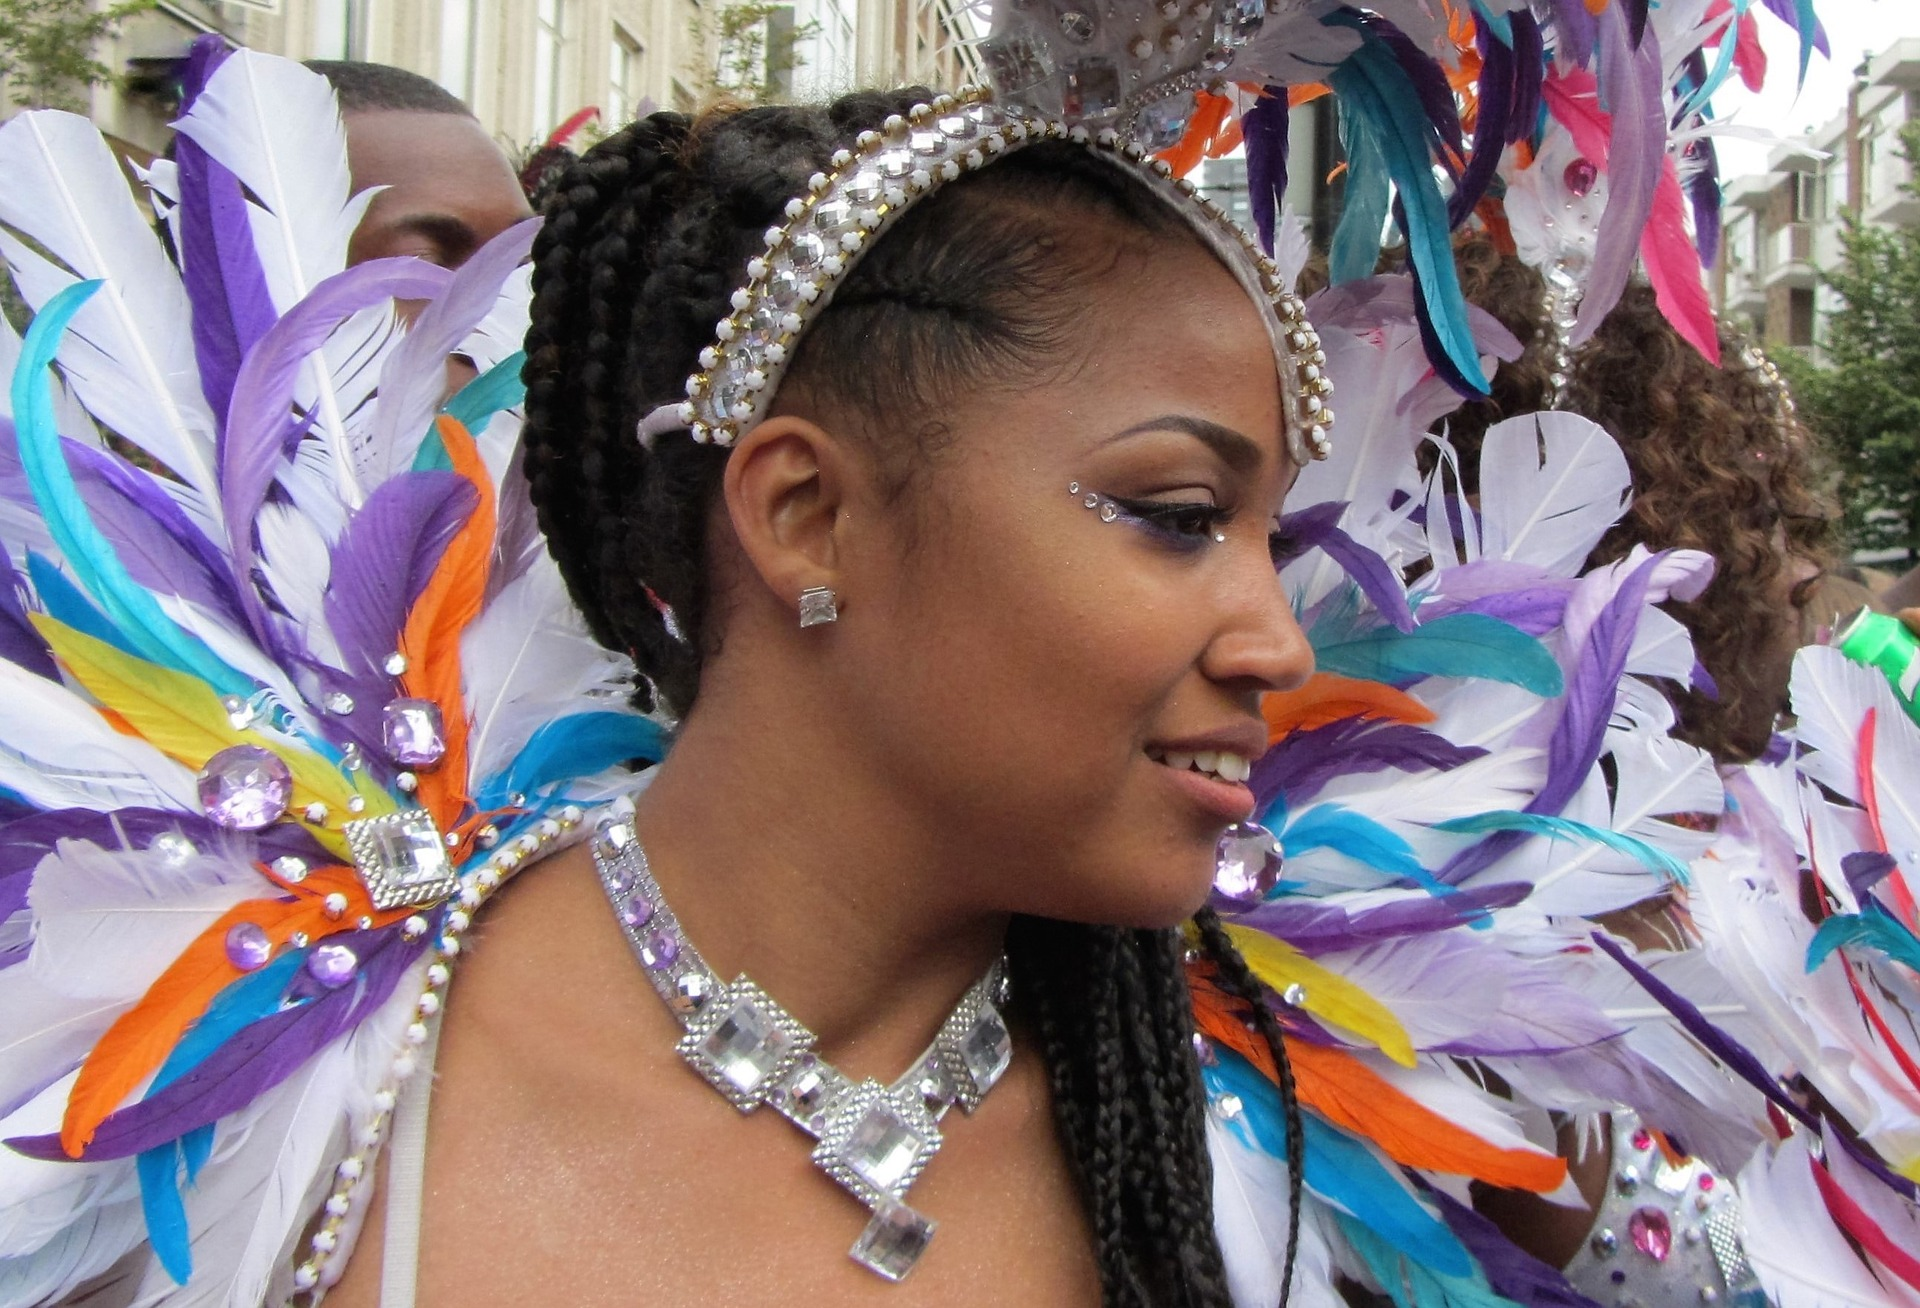 Ambergris Caye Festivals and Events